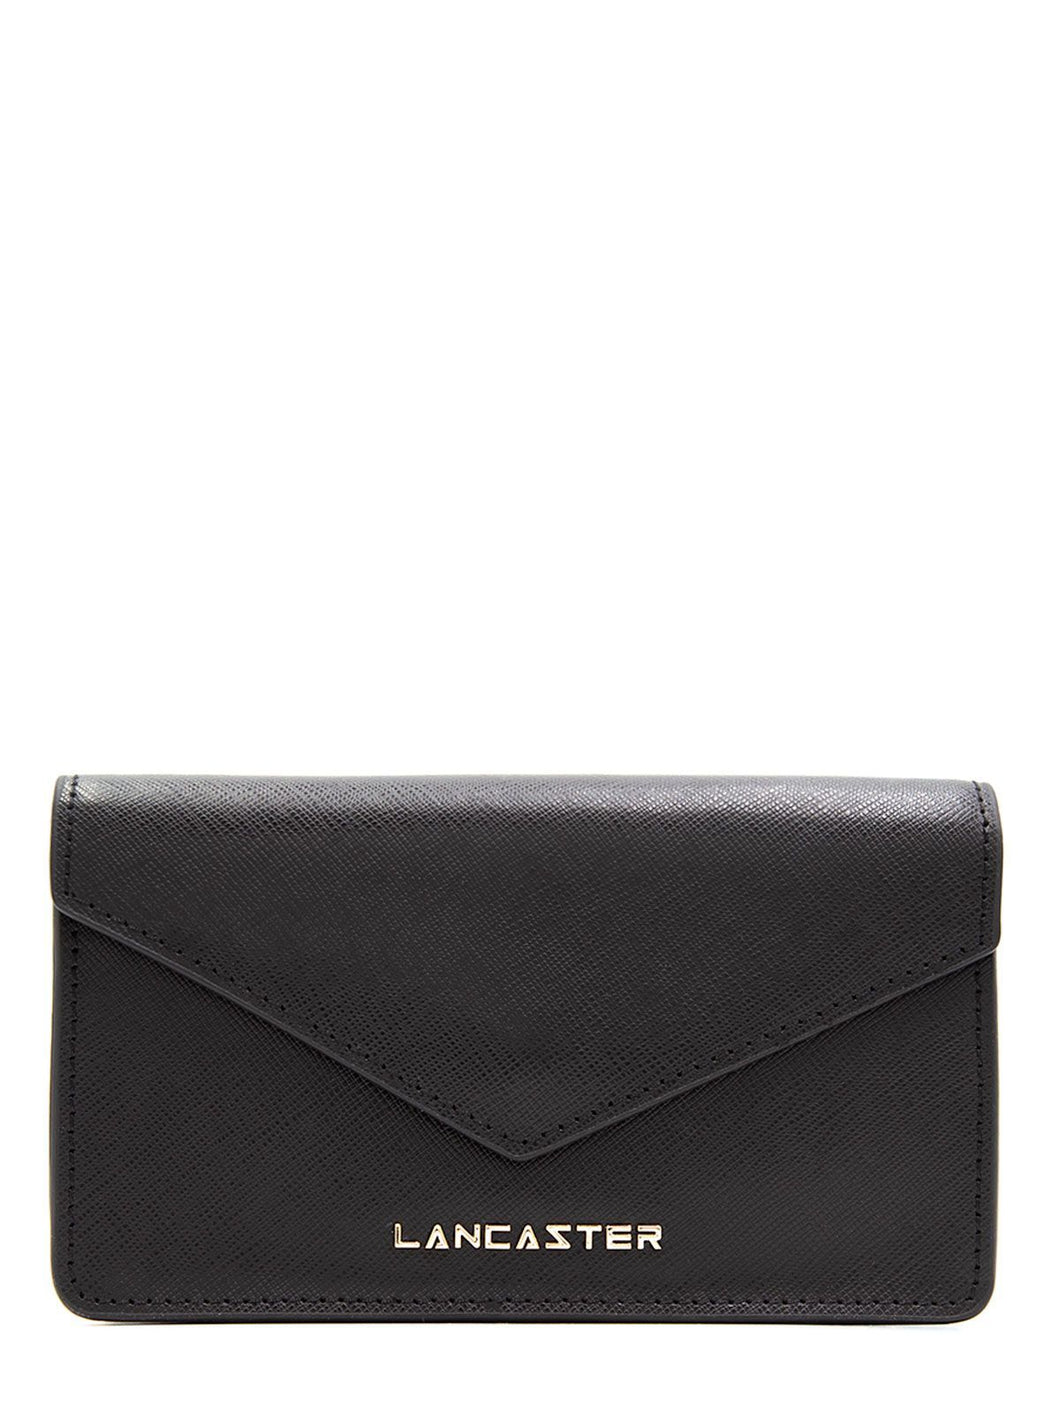 LANCASTER PARIS Saffiano Signature mini clutch